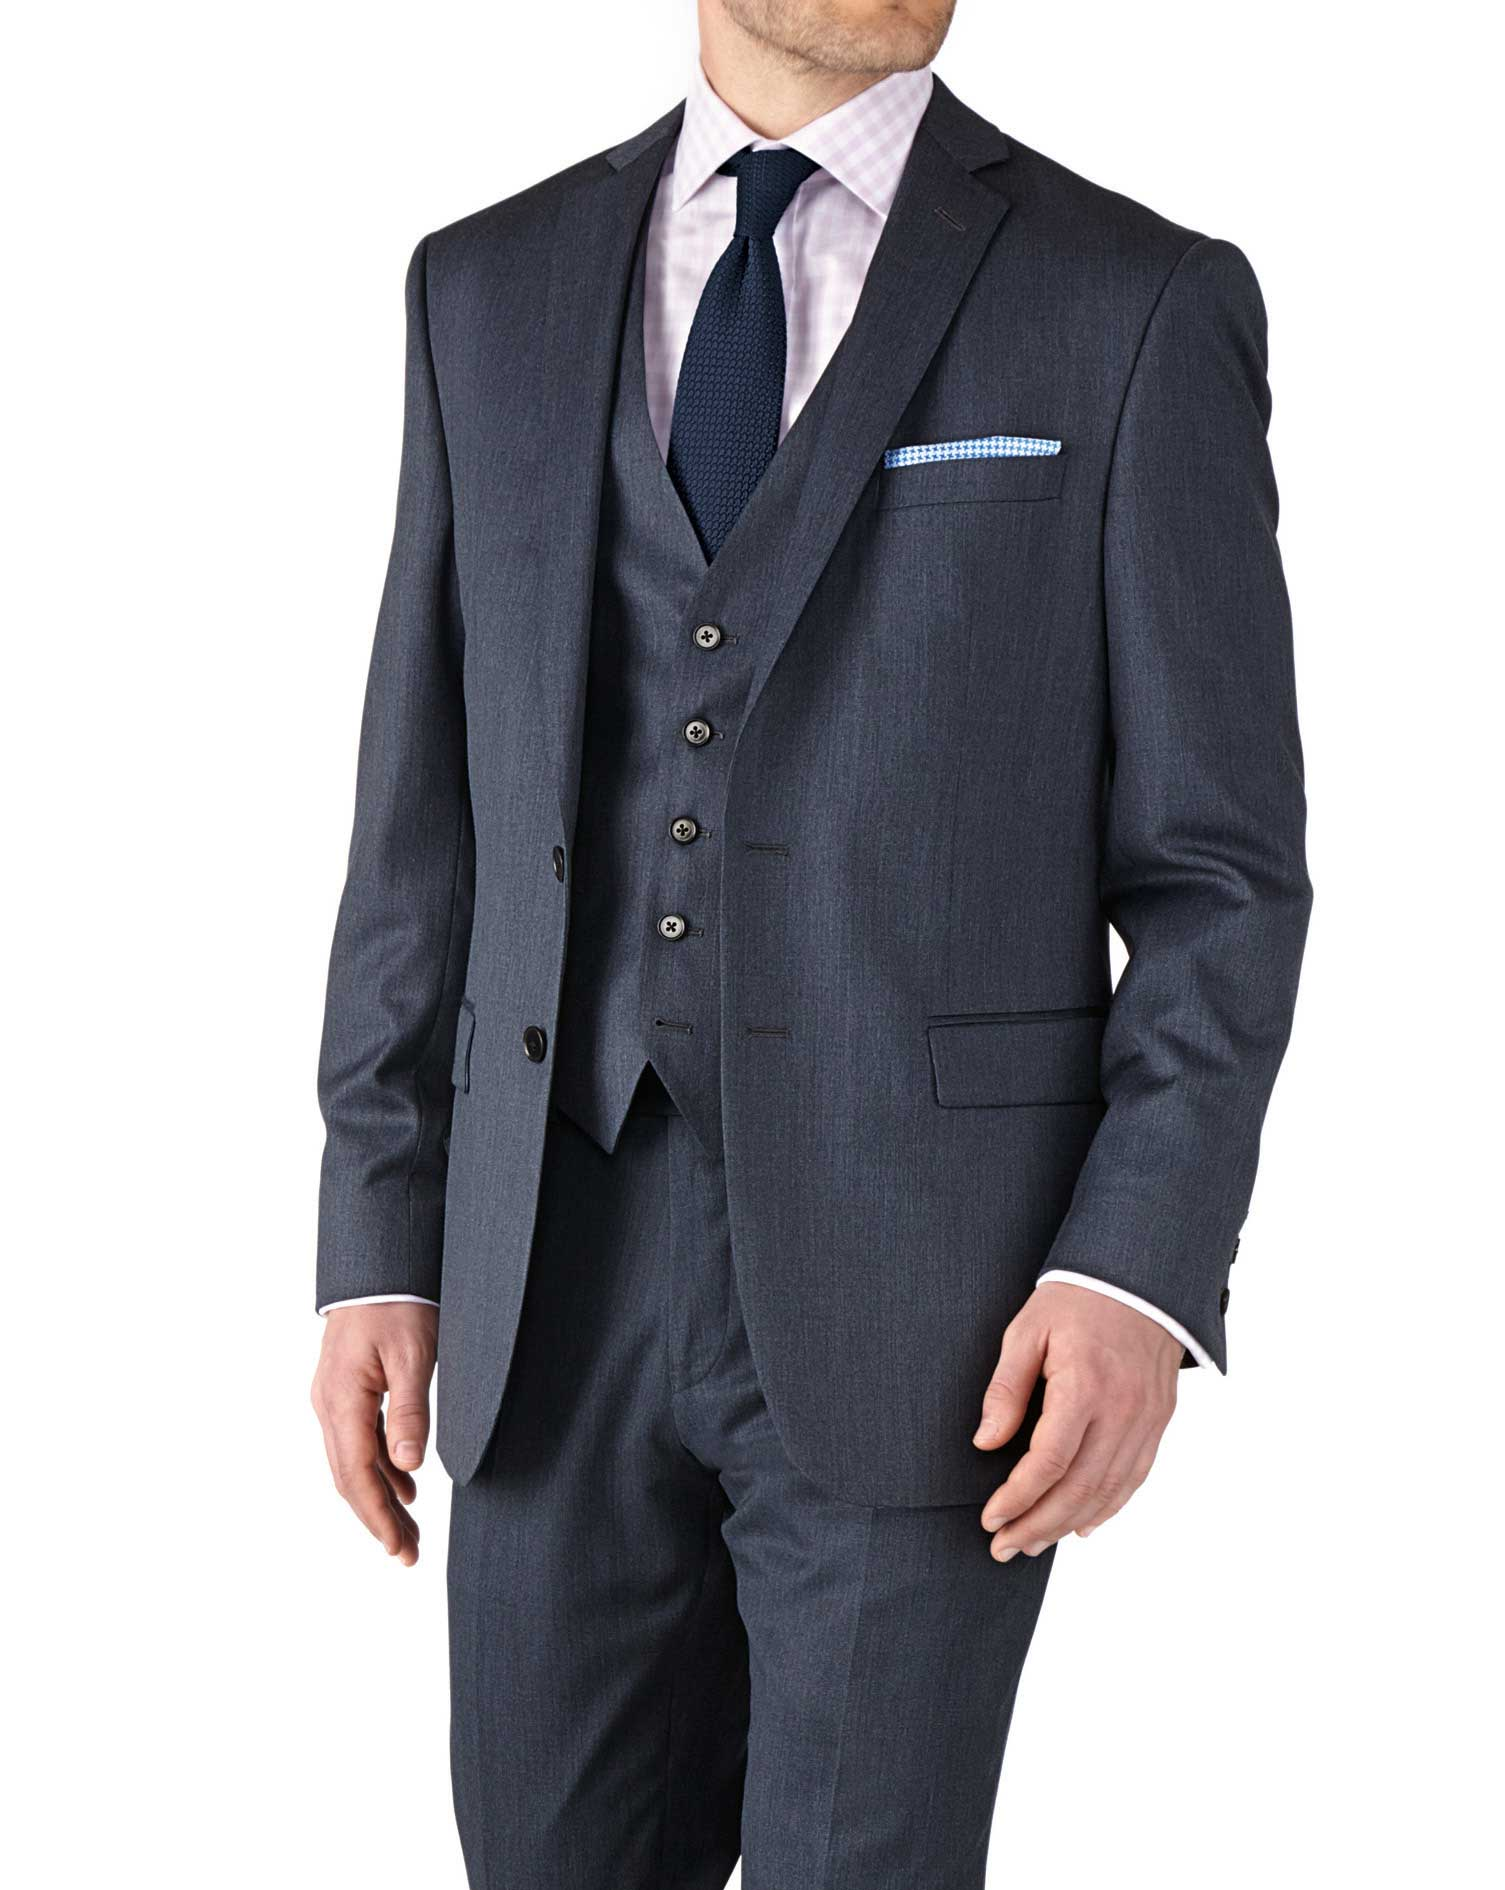 Airforce Blue Classic Fit Twill Business Suit Wool Jacket Size 38 Regular by Charles Tyrwhitt